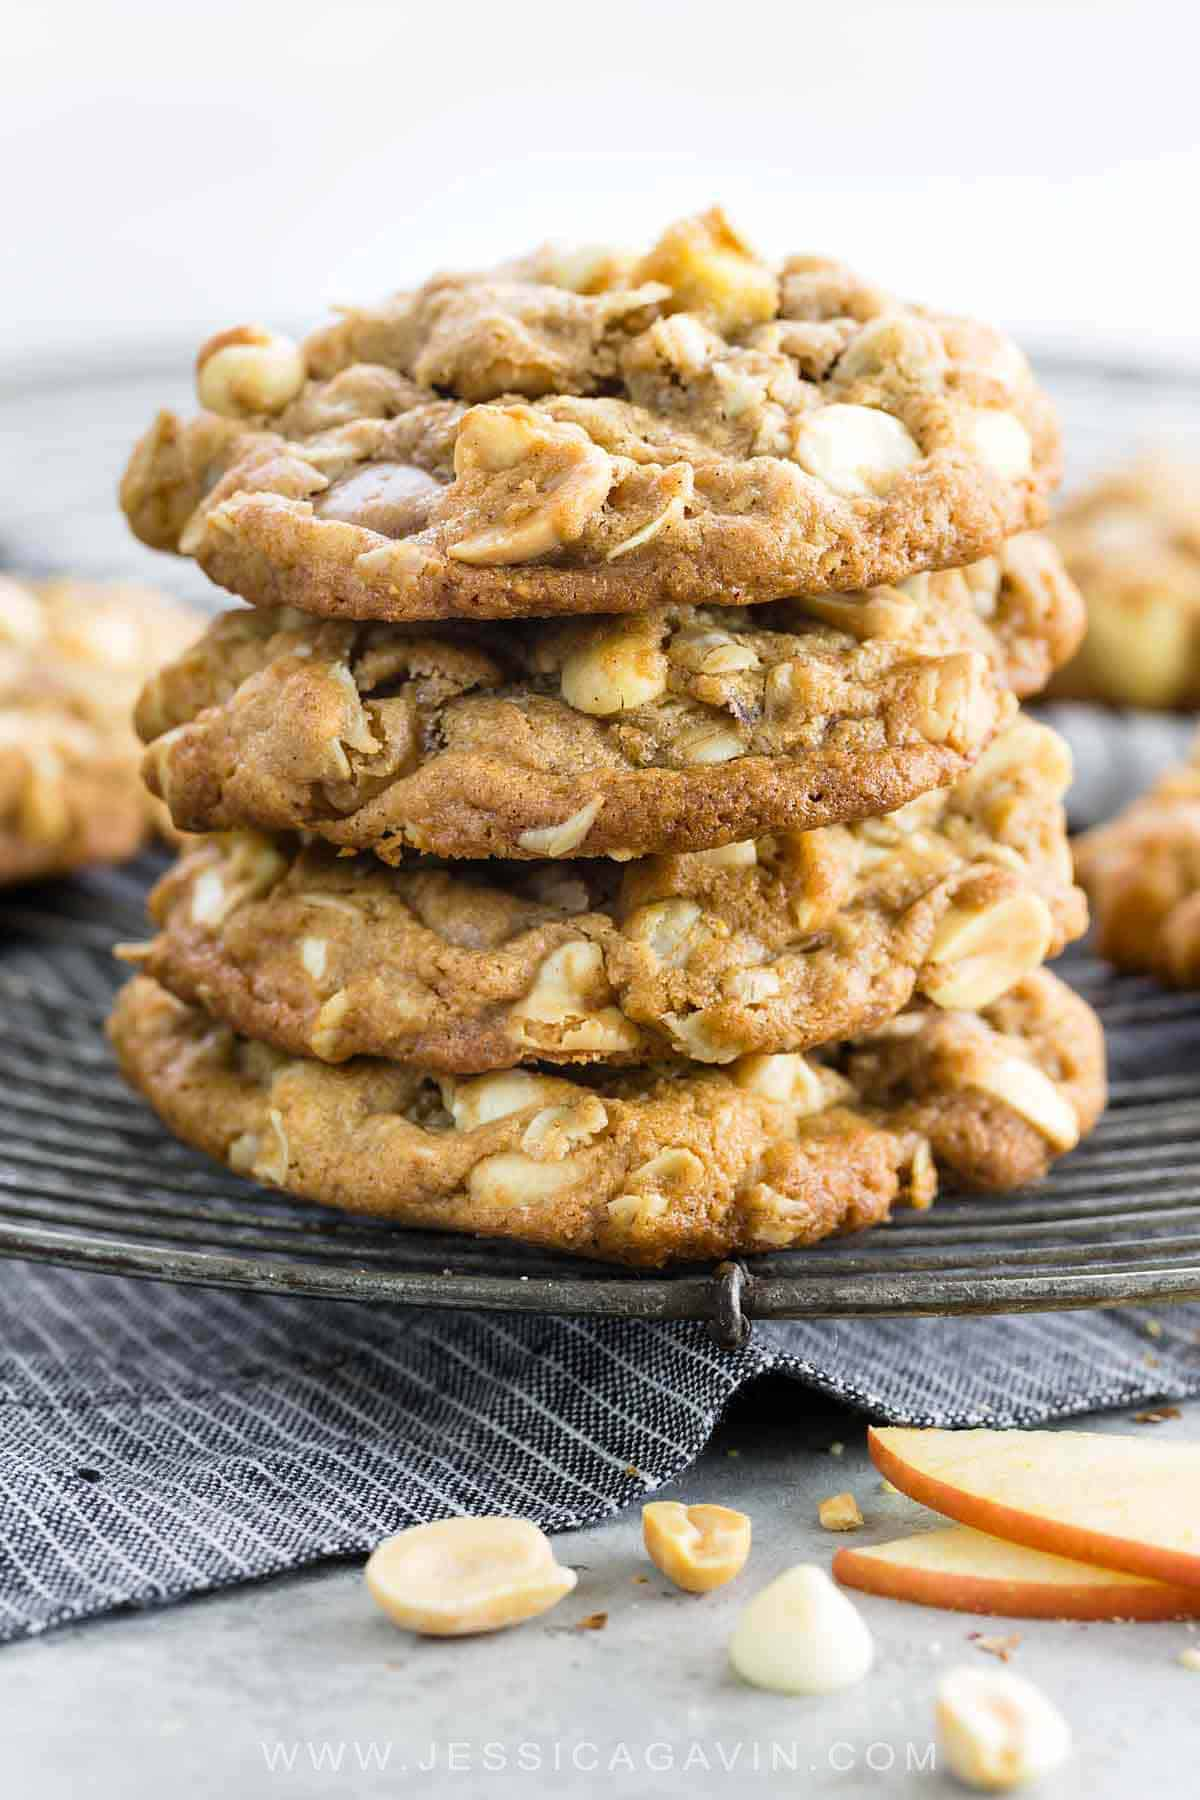 Apple oatmeal cookies will certainly satisfy your snack cravings this holiday season. This delicious recipe is made using fresh Fuji apples, whole wheat flour, peanuts, white chocolate chips and a little bit of cinnamon for a tasty combination. #cookies #oatmealcookies #applecookies #sweets